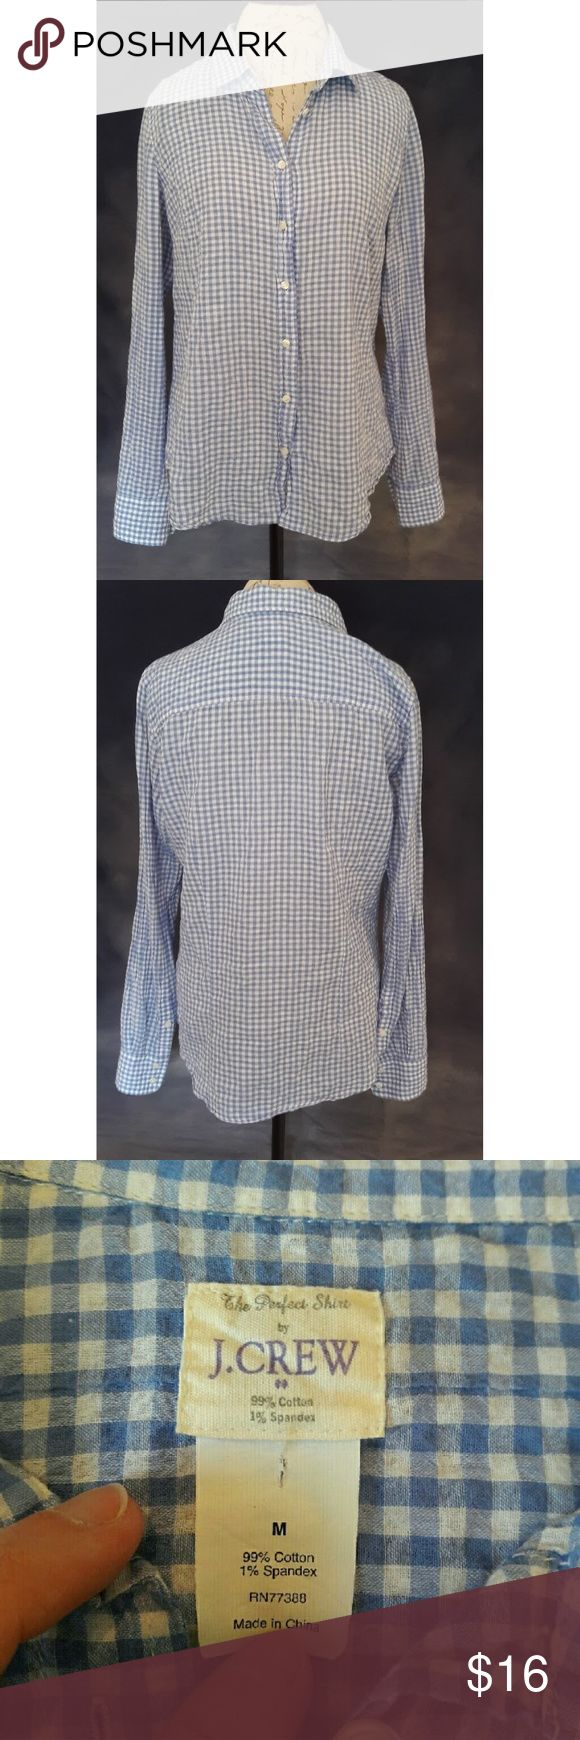 *LAST DROP* {J. Crew} checkered shirt Very cute blue and white button down shirt to wear with your favorite jeans. Great to pair with a white cami underneath. No flaws except on the tag there is a little hole (see pic). Does not affect wear. Measurements provided in pics above. From a smoke and pet free home. Very fast shipping. Bundle and save even more. J. Crew Factory Tops Button Down Shirts